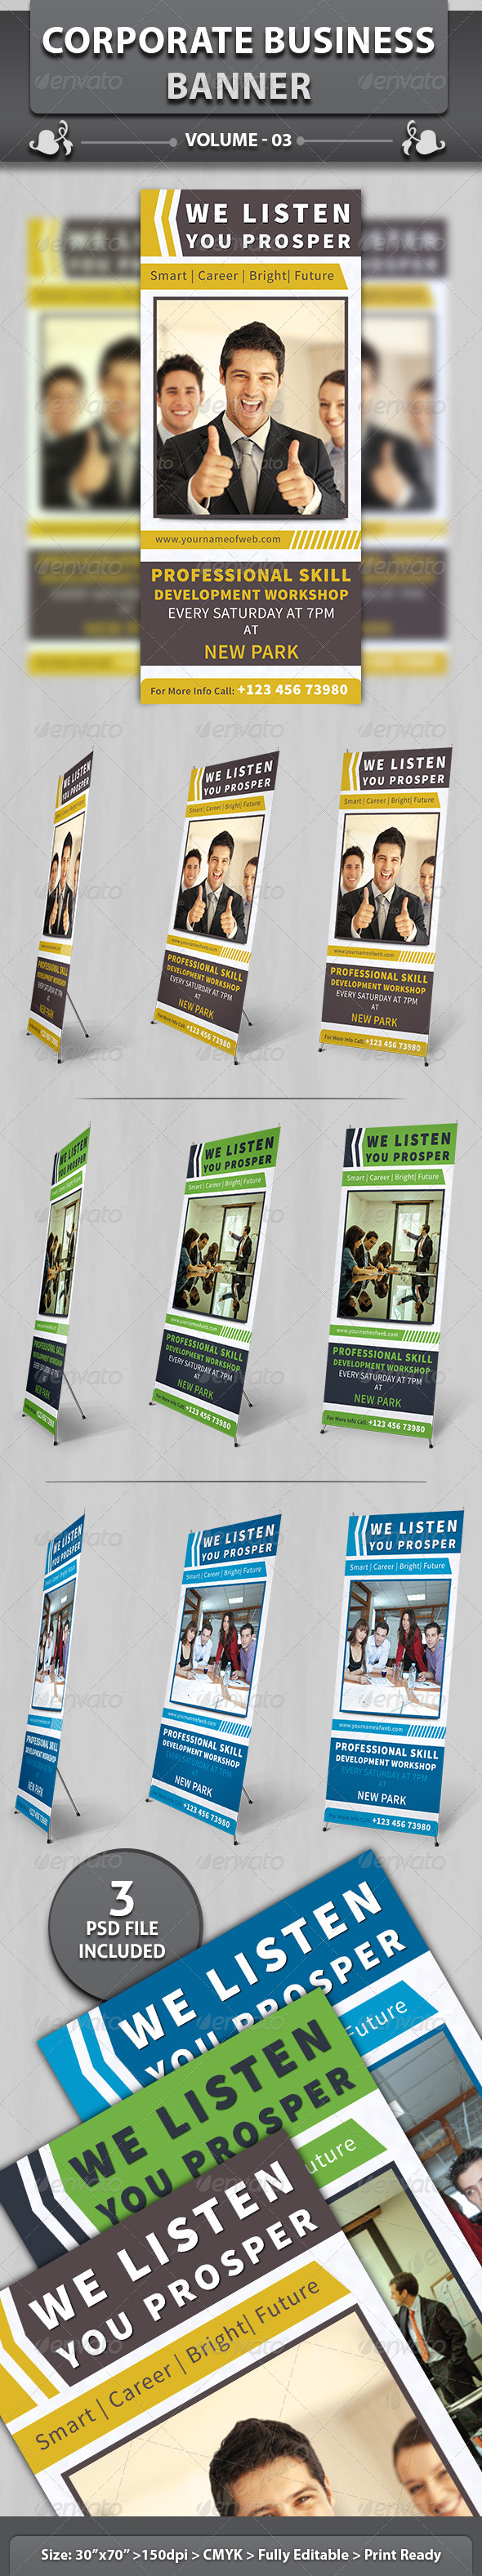 GraphicRiver Corporate Business Banner v3 5202473